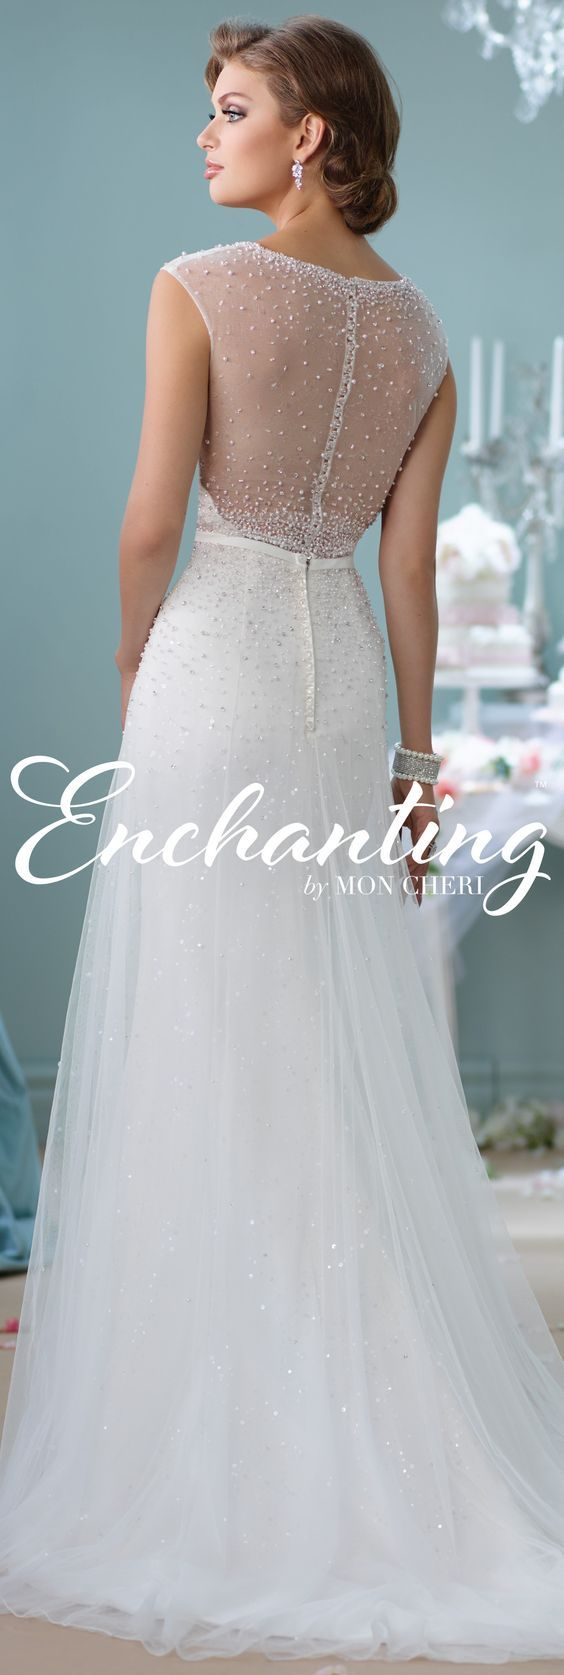 Enchanting by Mon Cheri Spring 2016 ~Style No. 116142 #tulleandsatinweddingdress